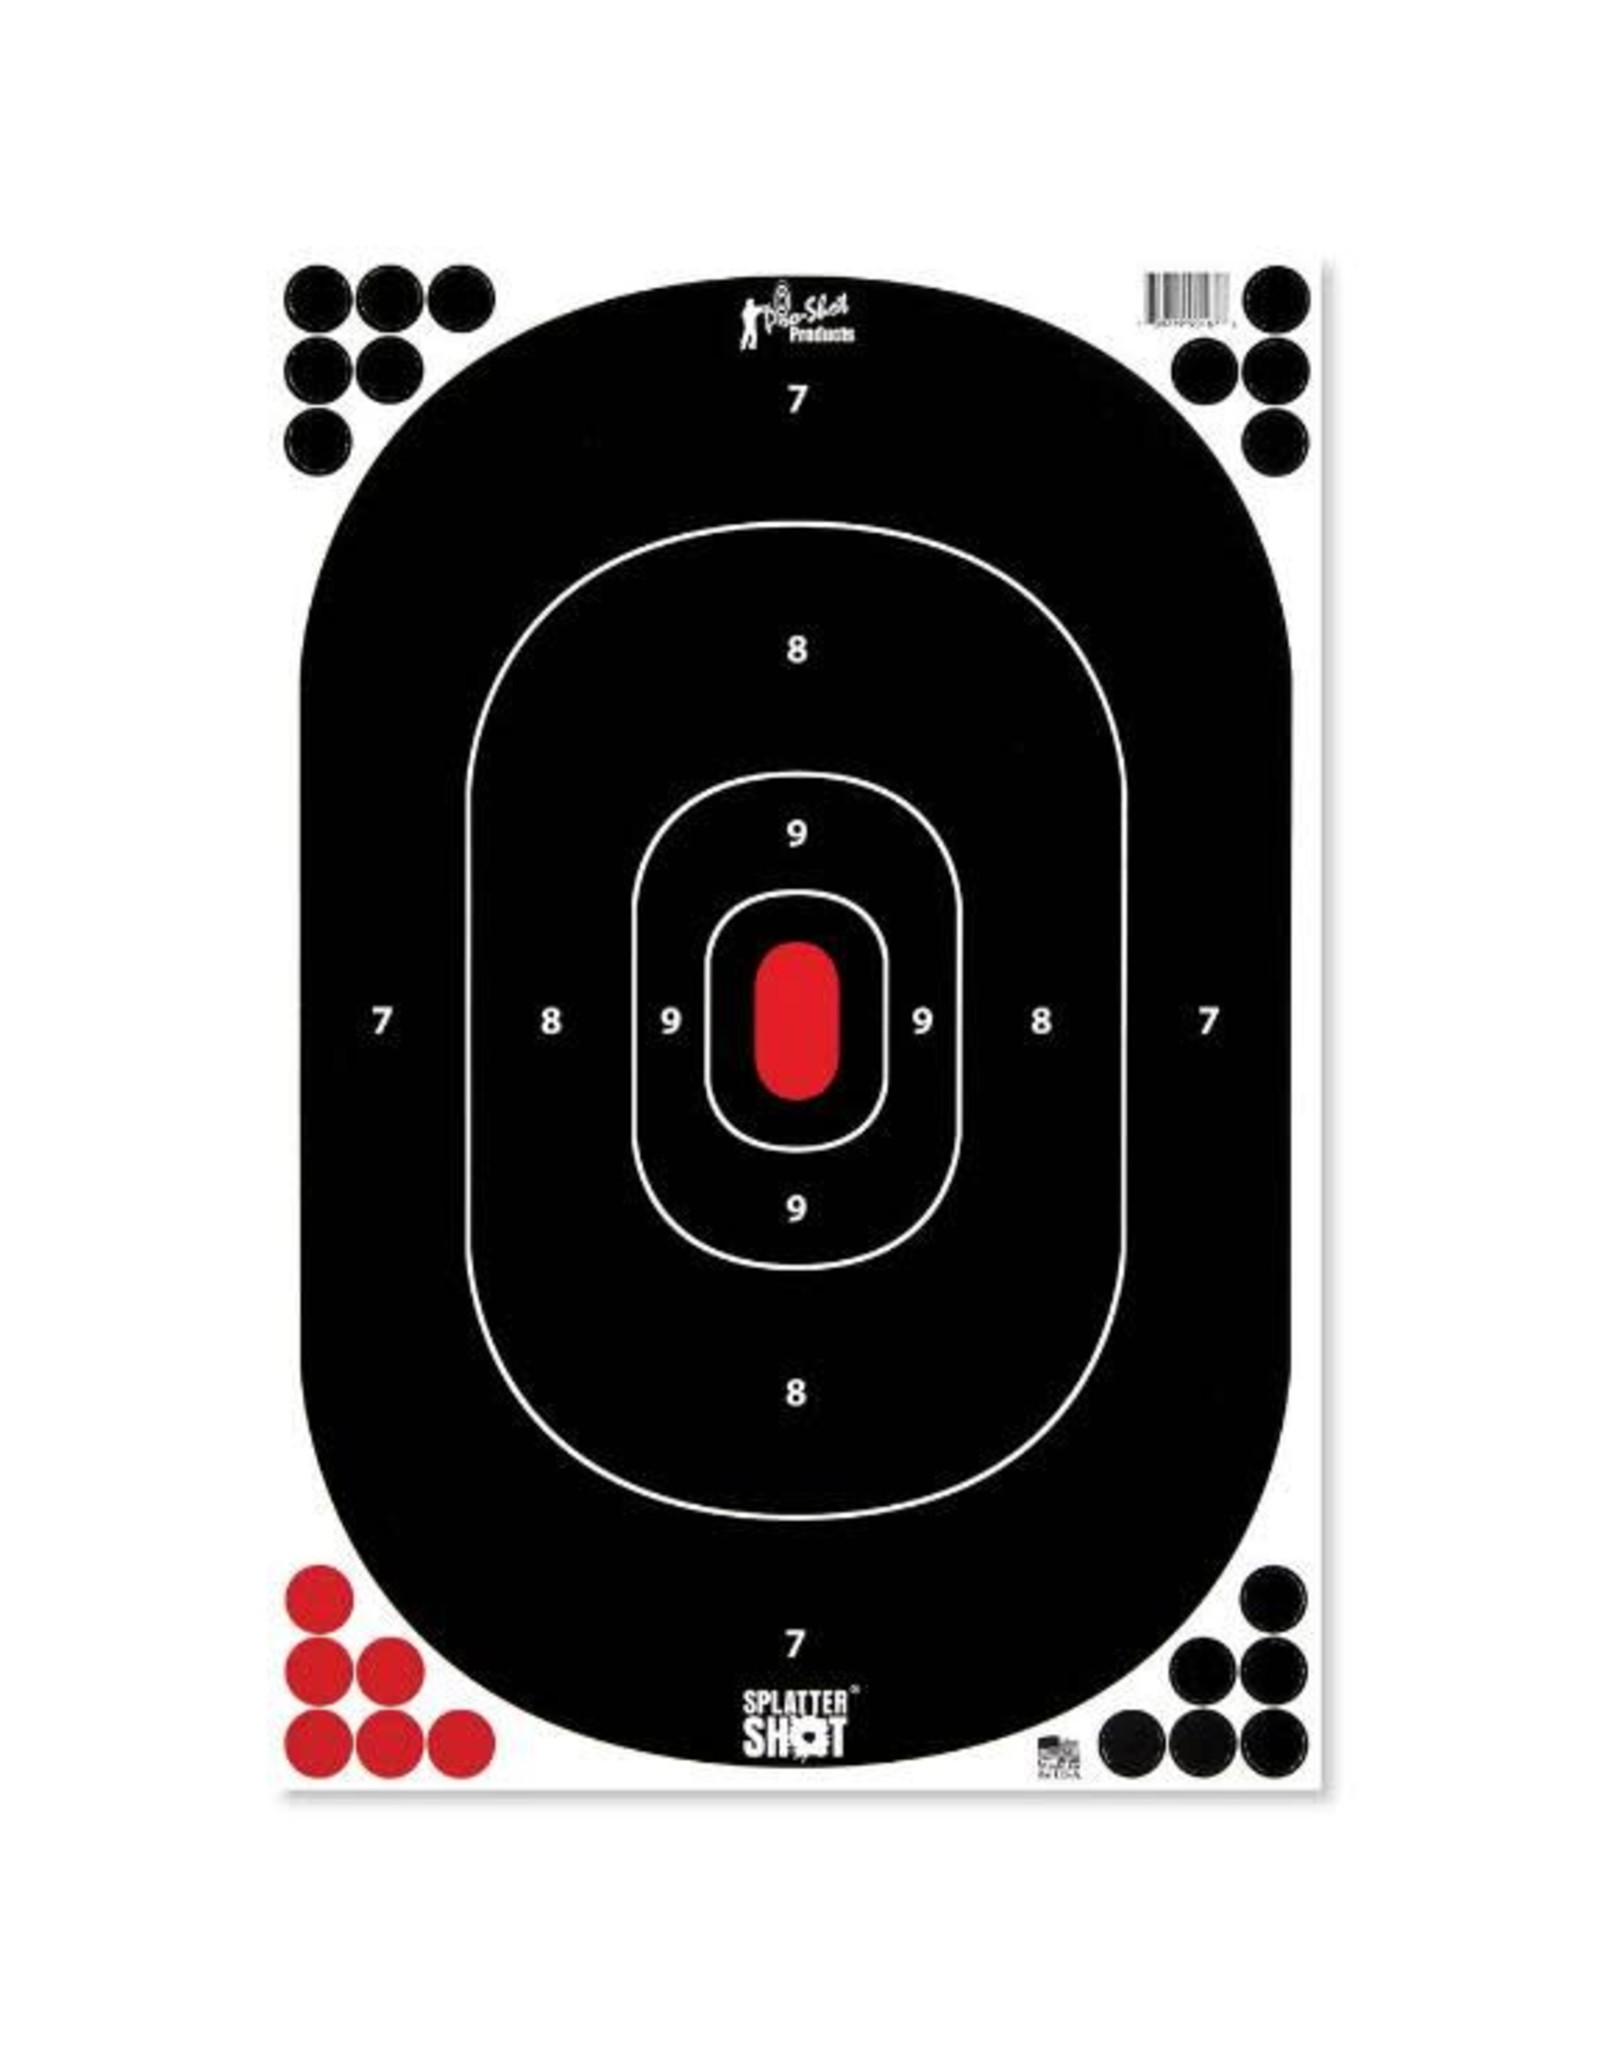 """Pro Shot Products 12""""x18"""" Silhouette Target Insert - Peel & Stick - 5 Qty pack"""